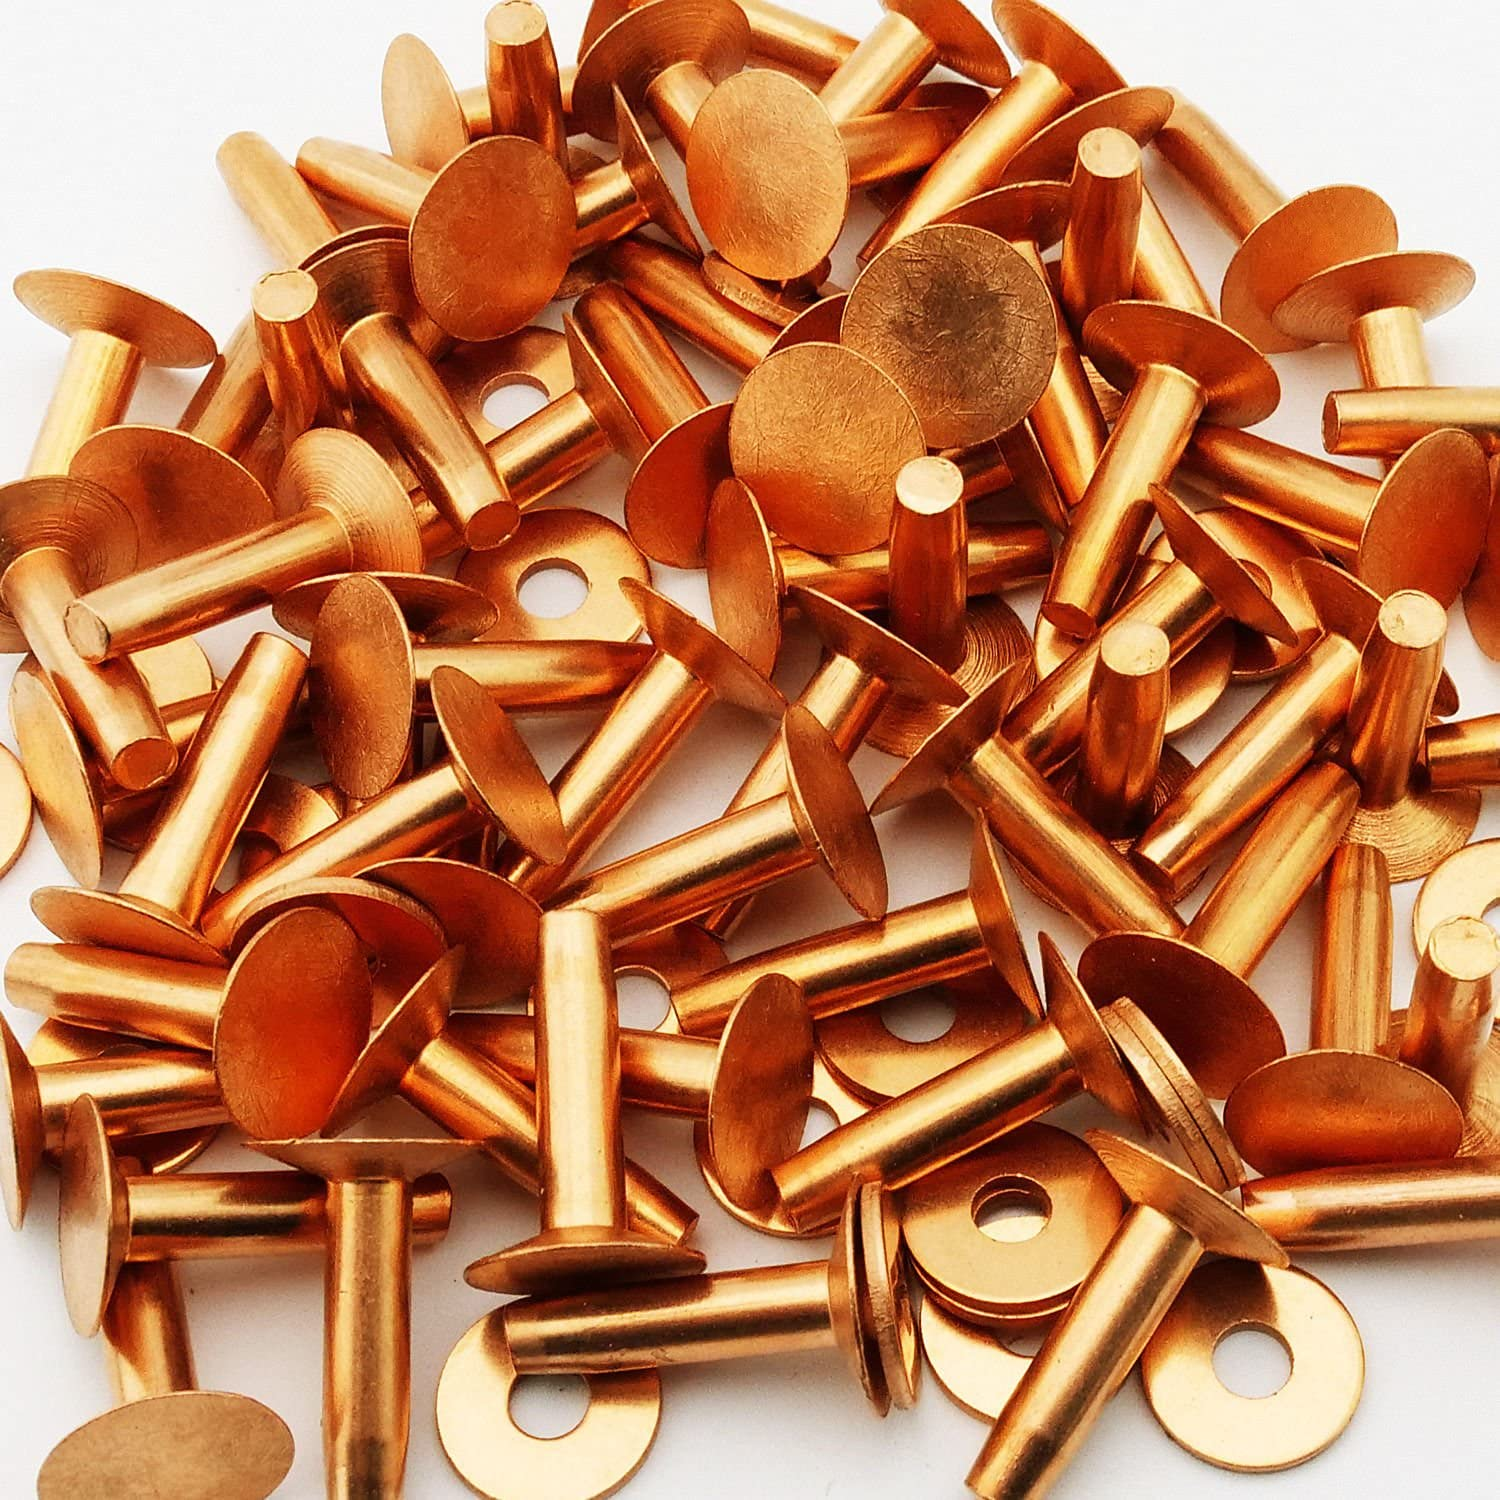 Plain Finish, Pack of 1//2lb - Approximately 28 Pieces Round Head 1//4 Dia X 5//8 Length Copper Solid Rivet